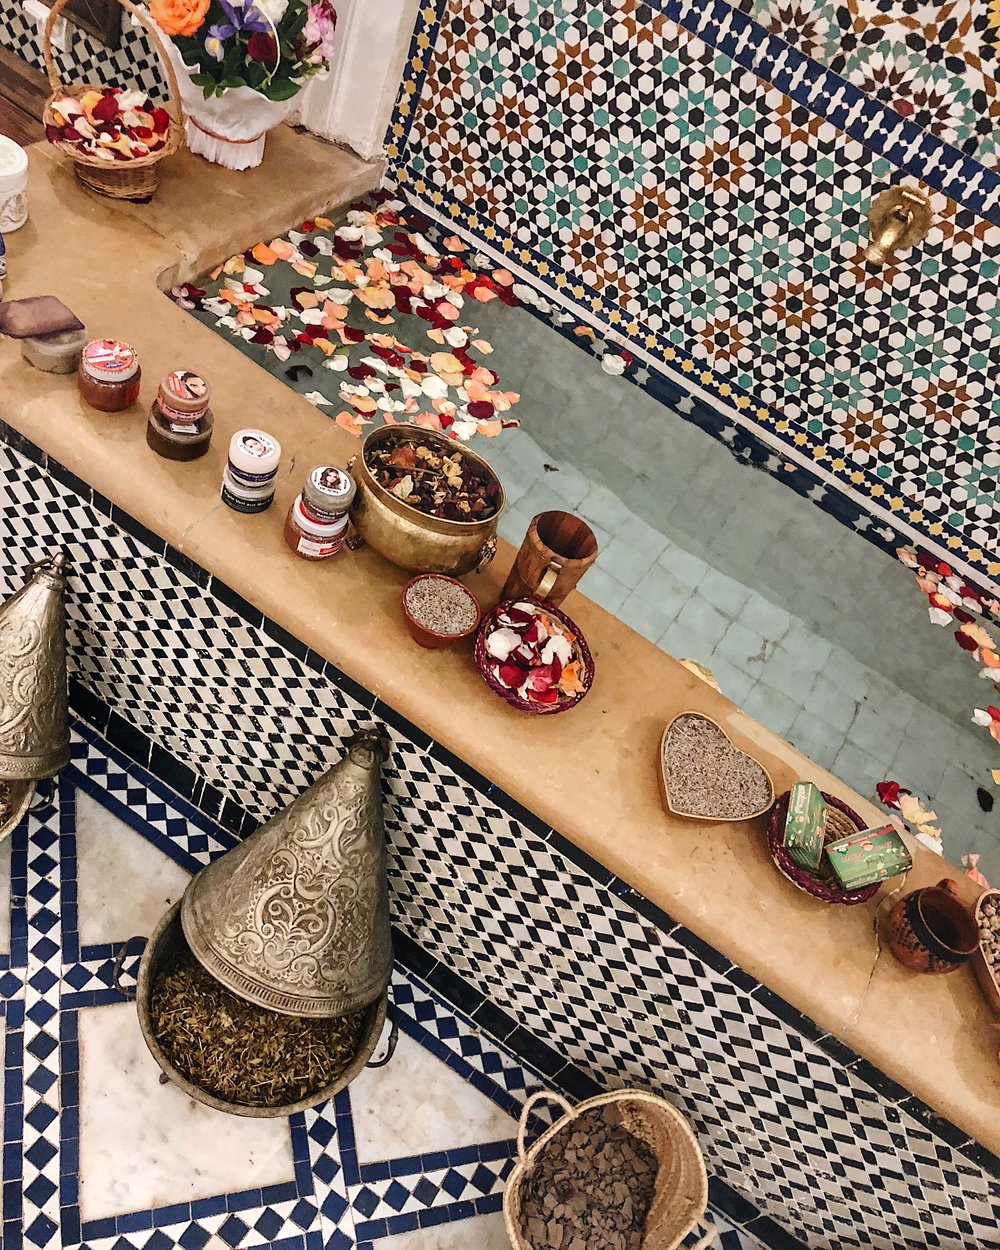 the HAMMAM BATH -  Before embarking on the trip we were told that we could not leave Morocco without experiencing a traditional Hammam bath -- we weren't told too much more.The lovely couple we were staying with in Fez suggested a bath house in the Medina. She said it was